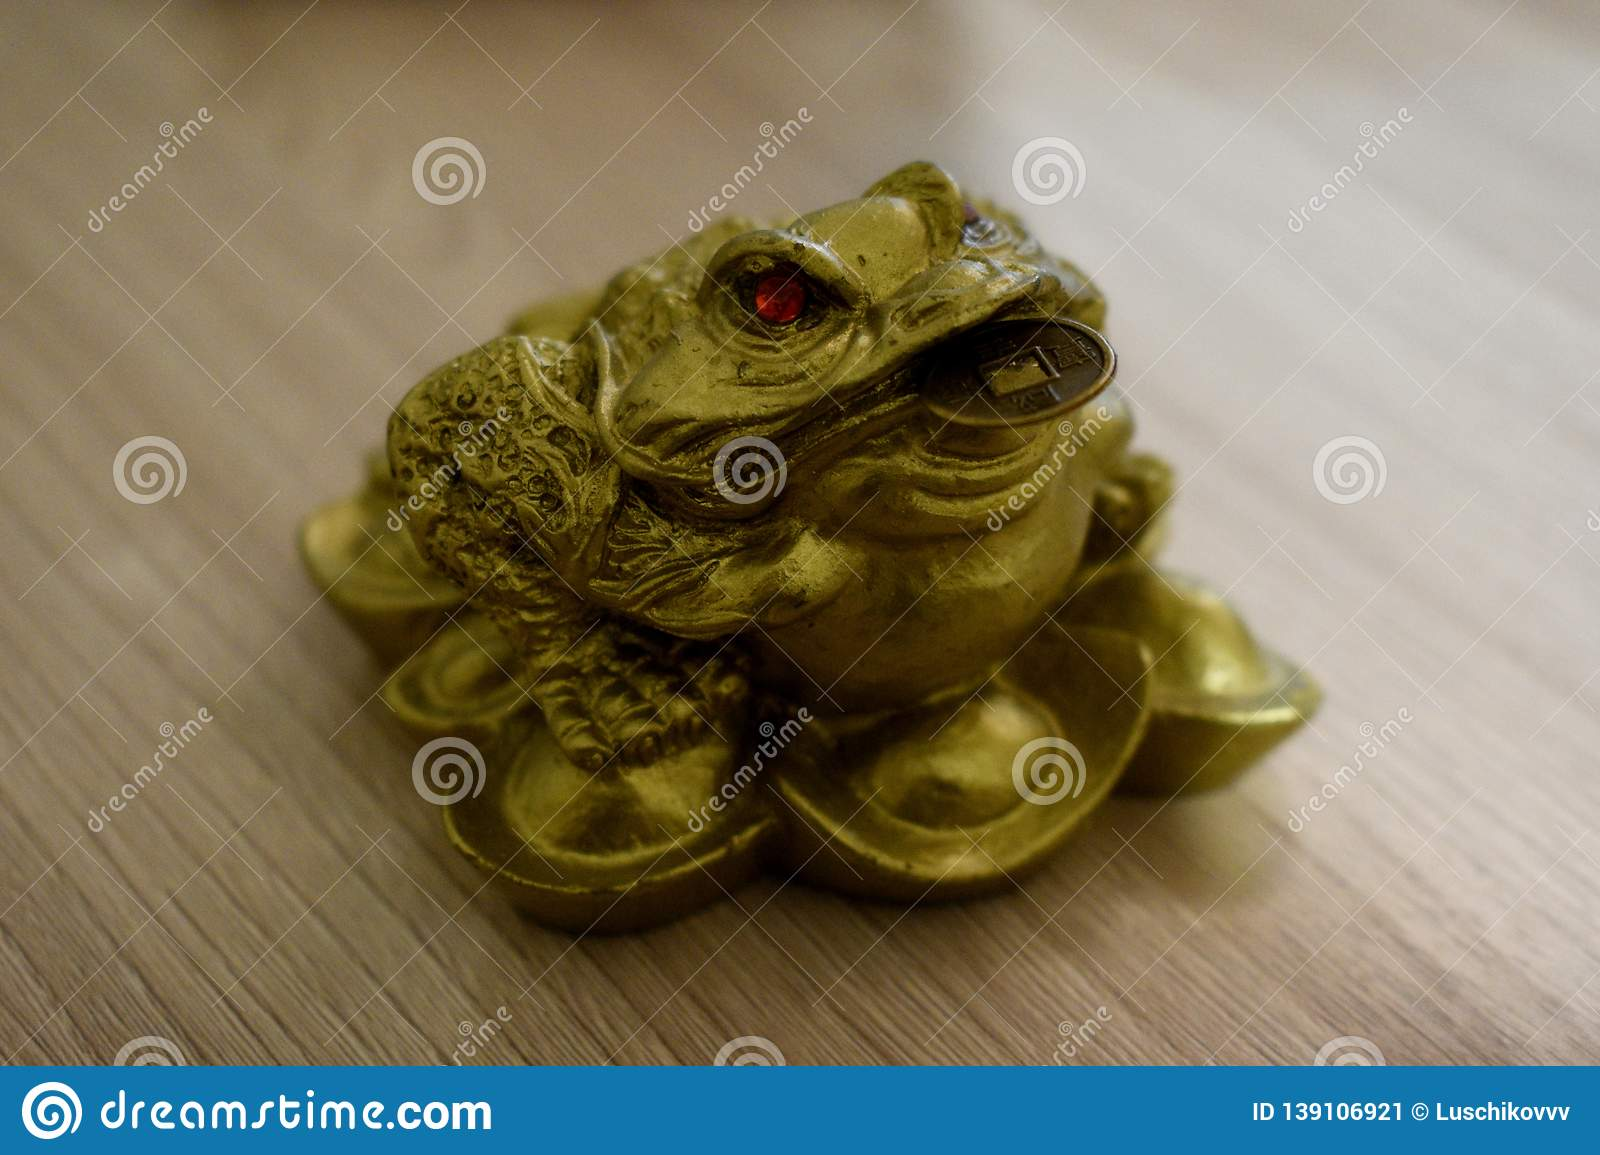 Three-legged money toad with a coin in his mouth.